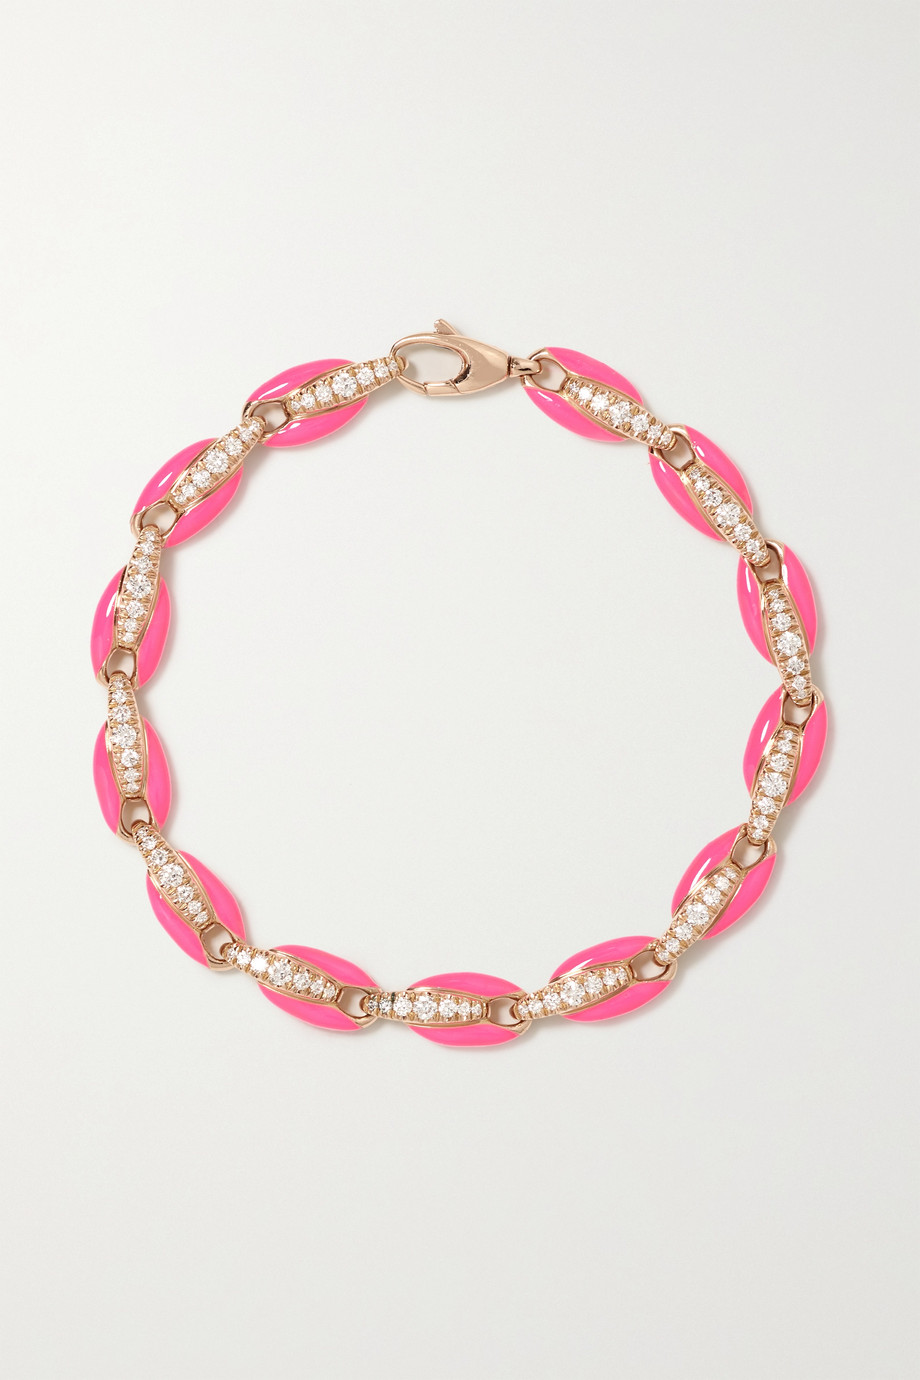 Melissa Kaye Ada 18-karat rose gold, diamond and enamel bracelet